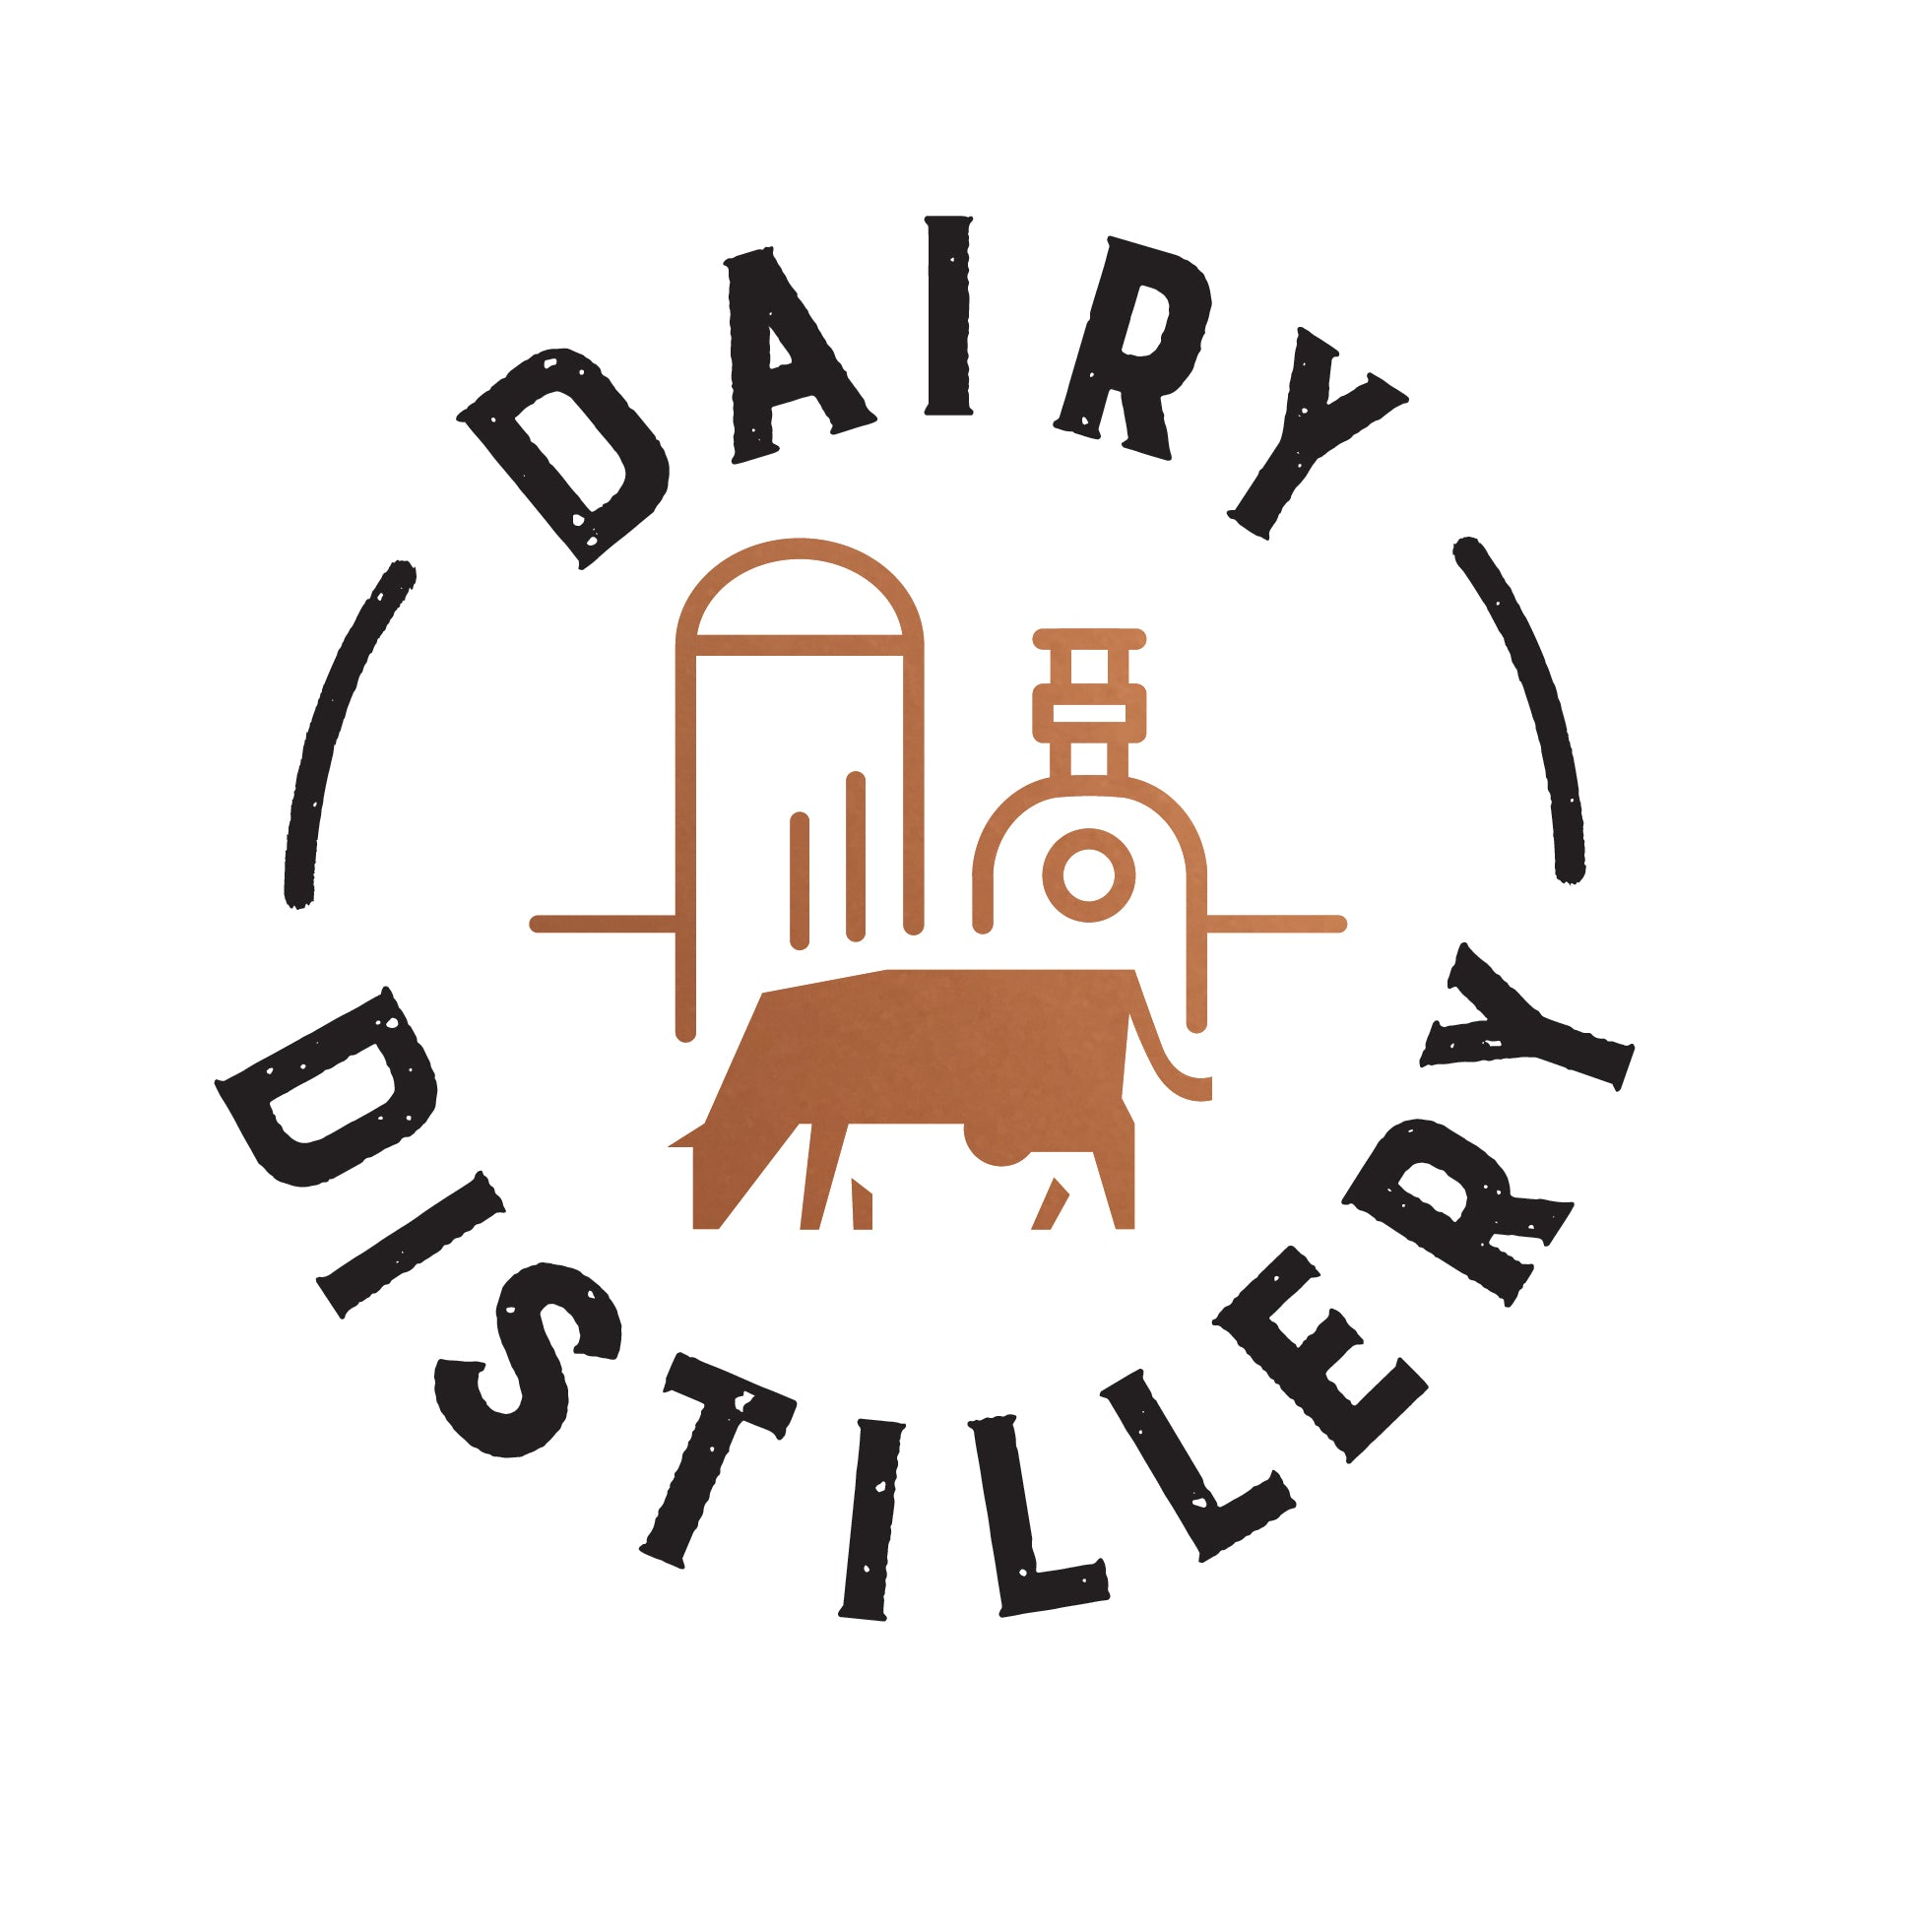 The Dairy Distillery's logo, makers of Vodkow Milk Vodka